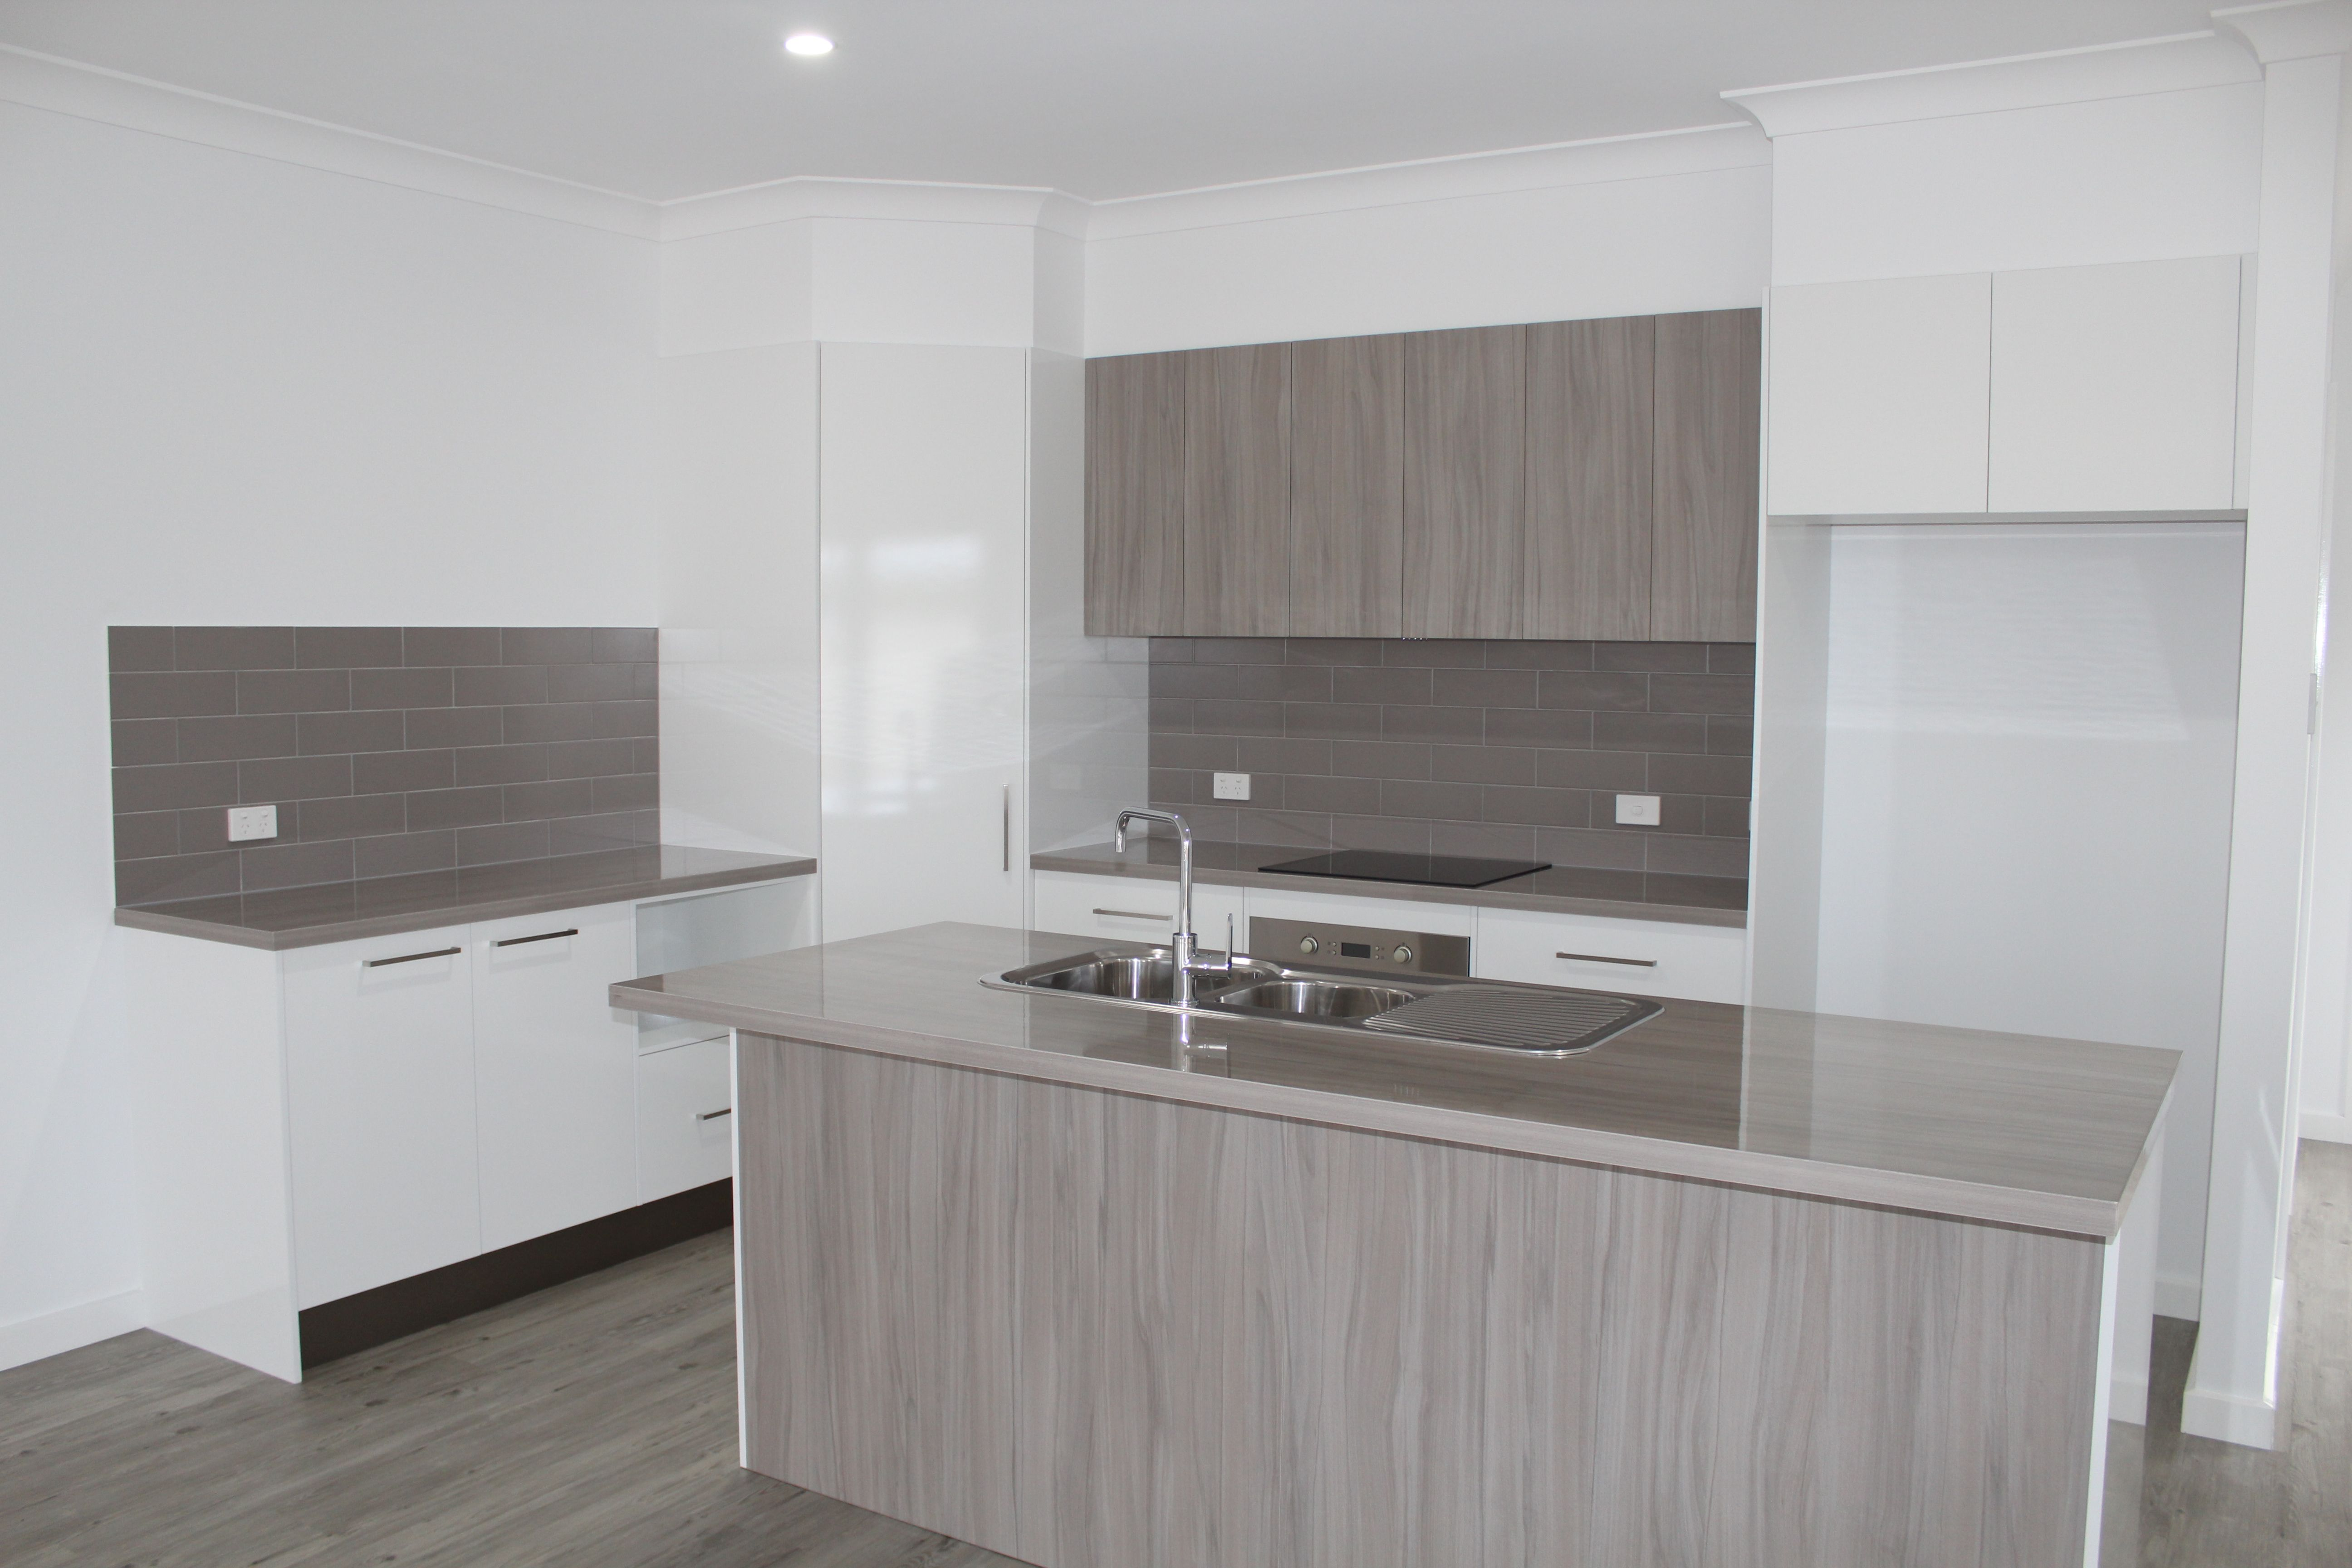 laminex kitchen design. Laminex Washboard natural benchtop  panels Our recent projects Pinterest Custom kitchens Kitchens and House